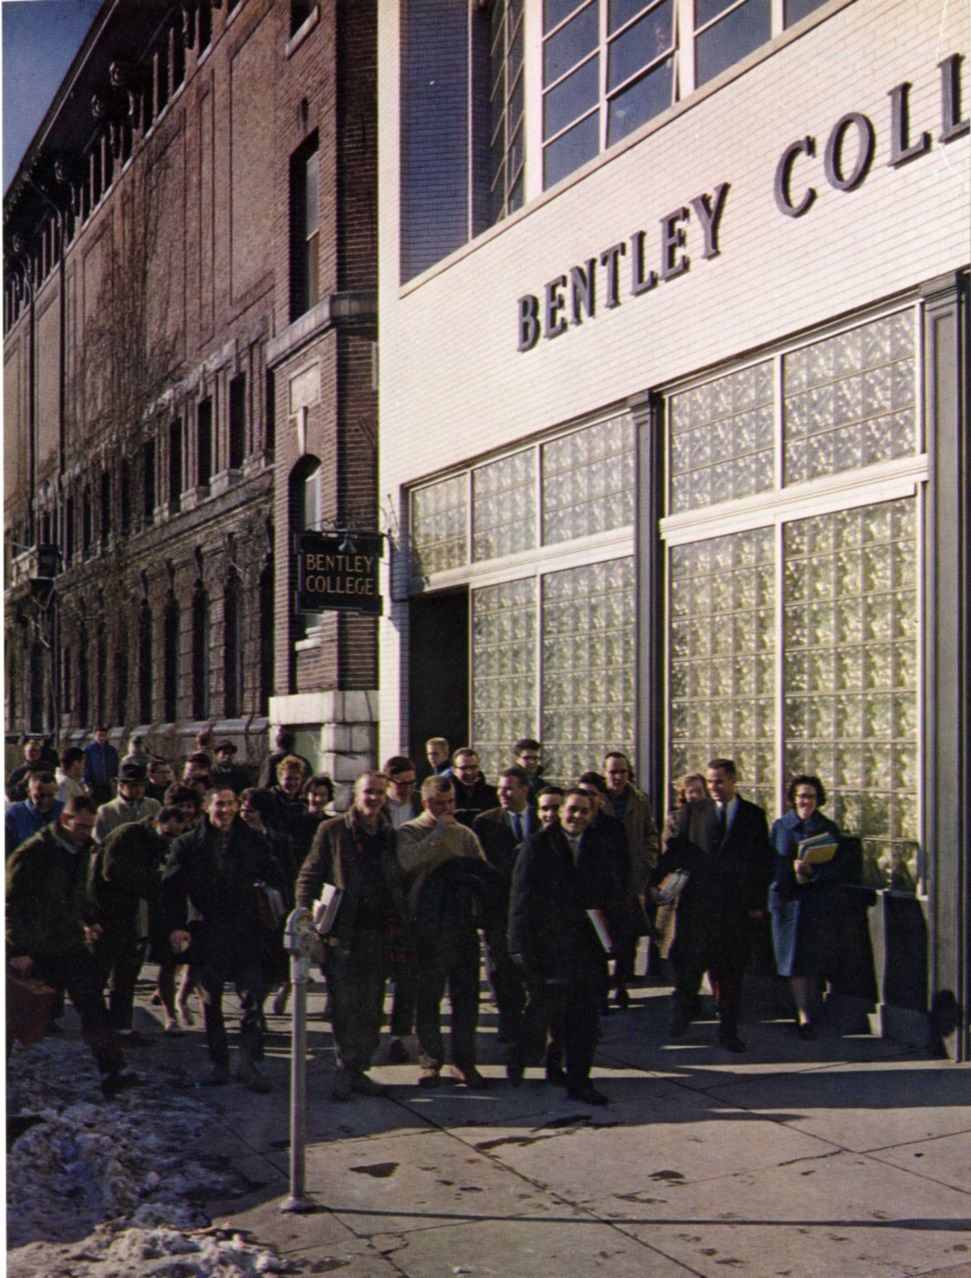 Students walk outside 921 Boylston Street in 1964. Before the move to Waltham, Bentley was primarily a commuter school. Though many students now live on campus, there are still large numbers of commuters whose needs are represented by the Commuter Association.